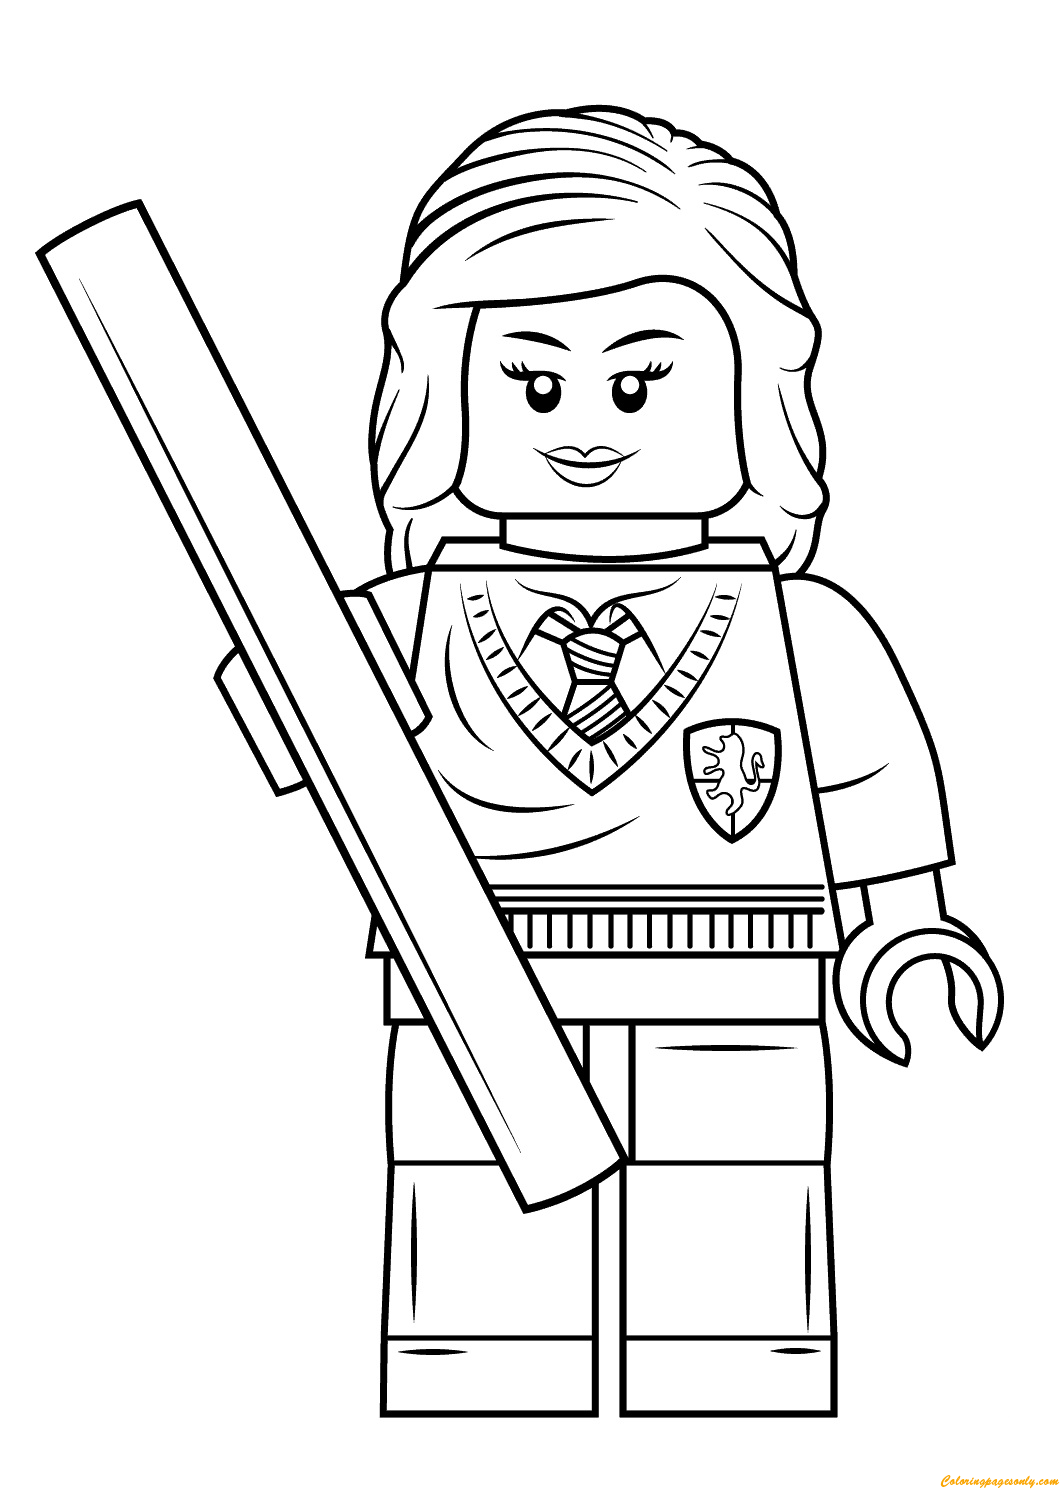 Lego Harry Potter Hermione Granger Coloring Page Free